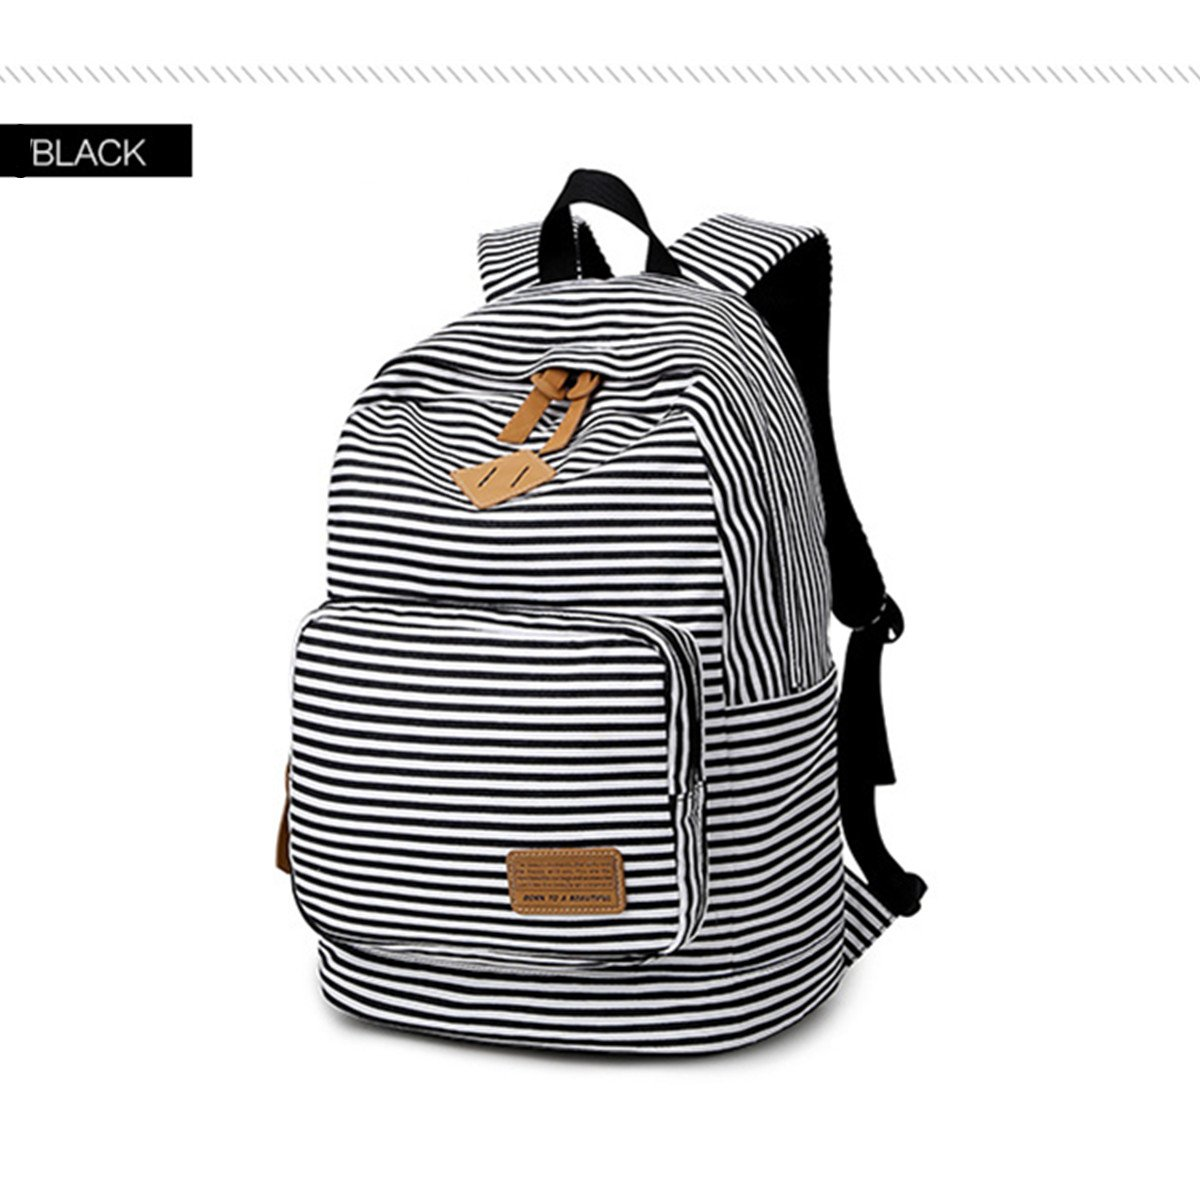 Black YQWEL Striped Canvas Backpack Girls School Bag Women Casual Travel Daypack